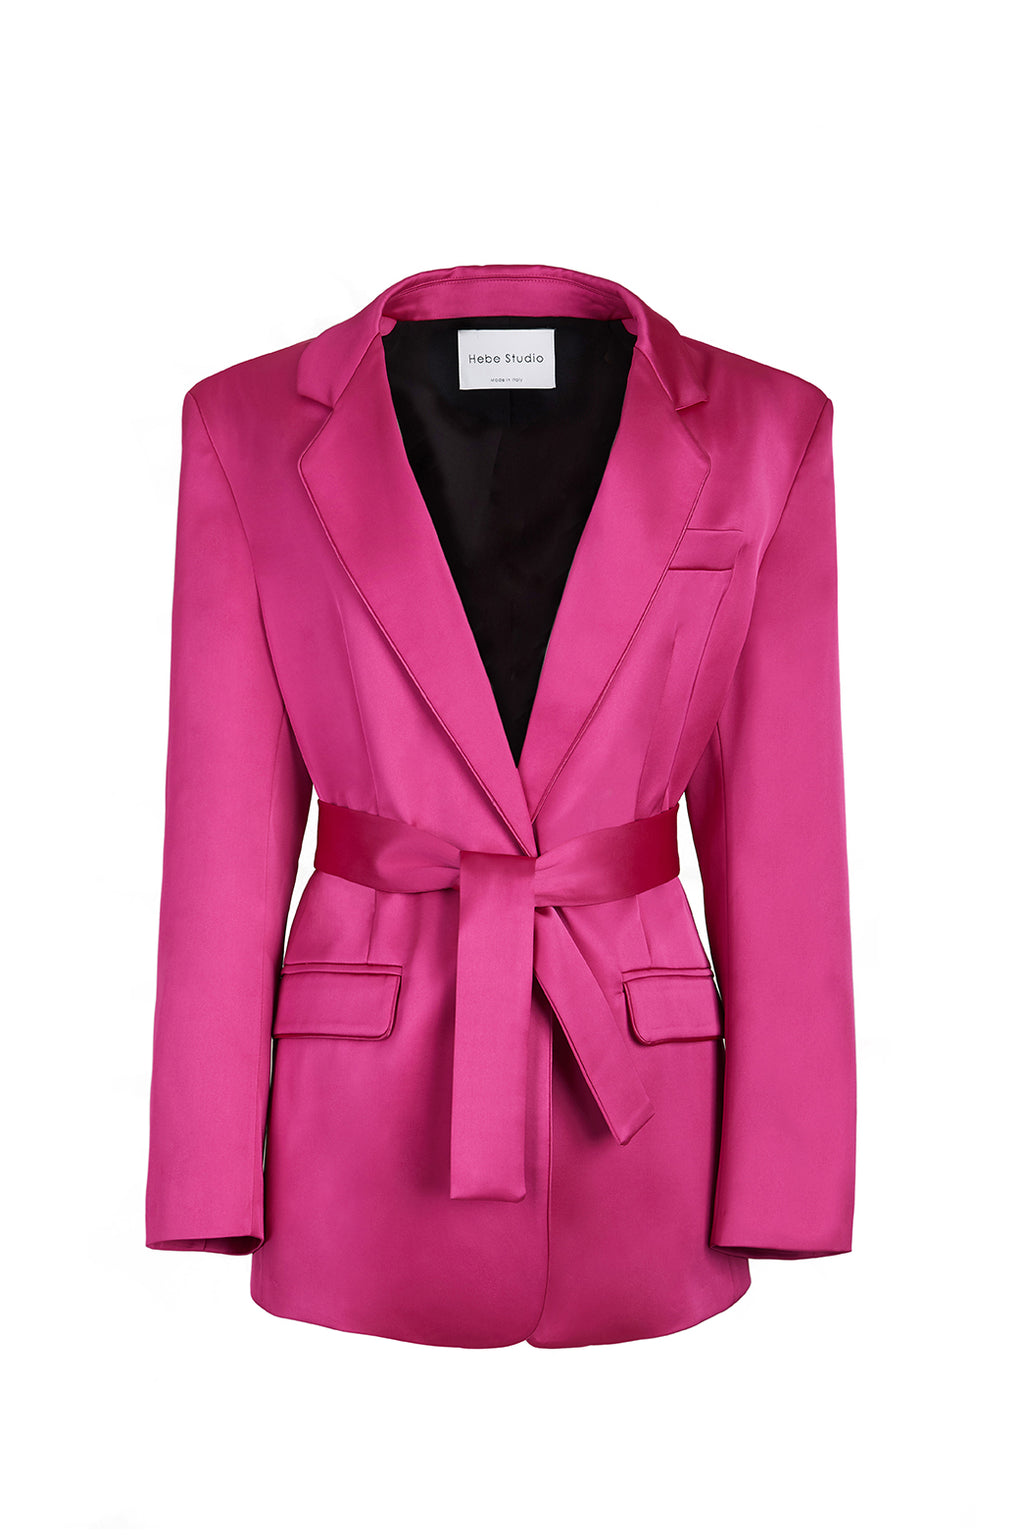 The Fuchsia Satin Lover Blazer with belt